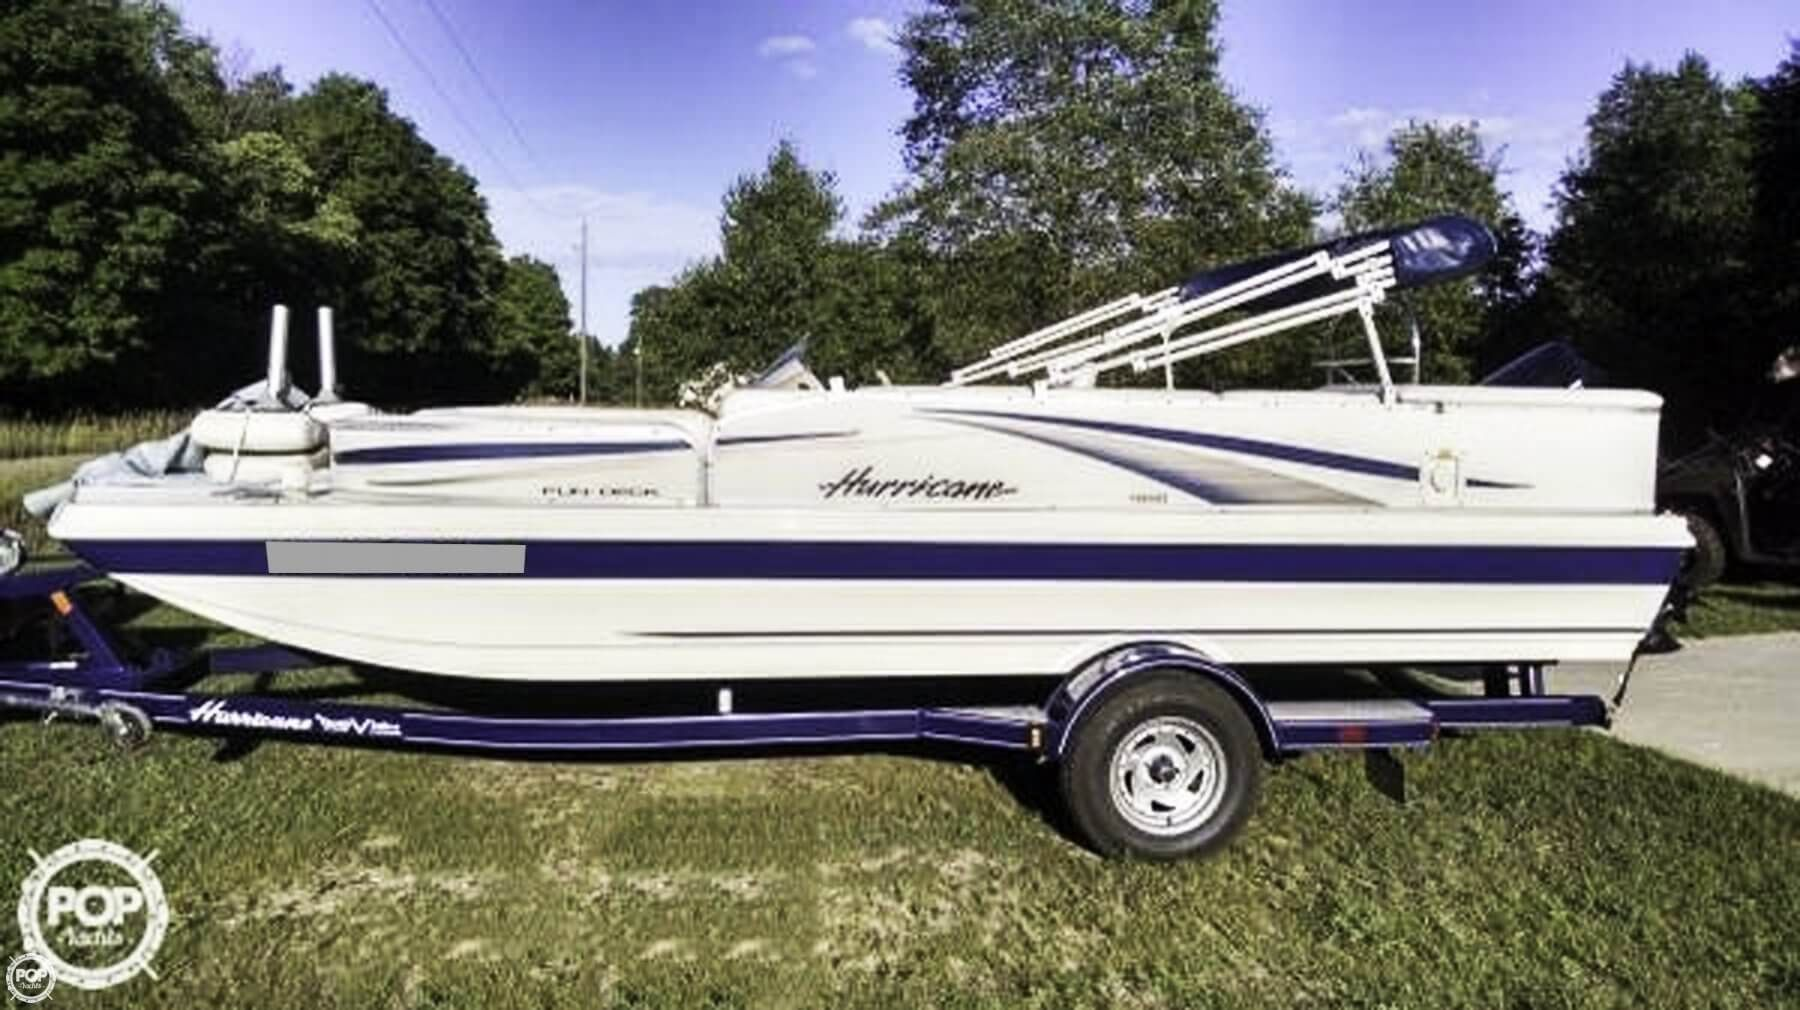 Pin On Boats For Sale